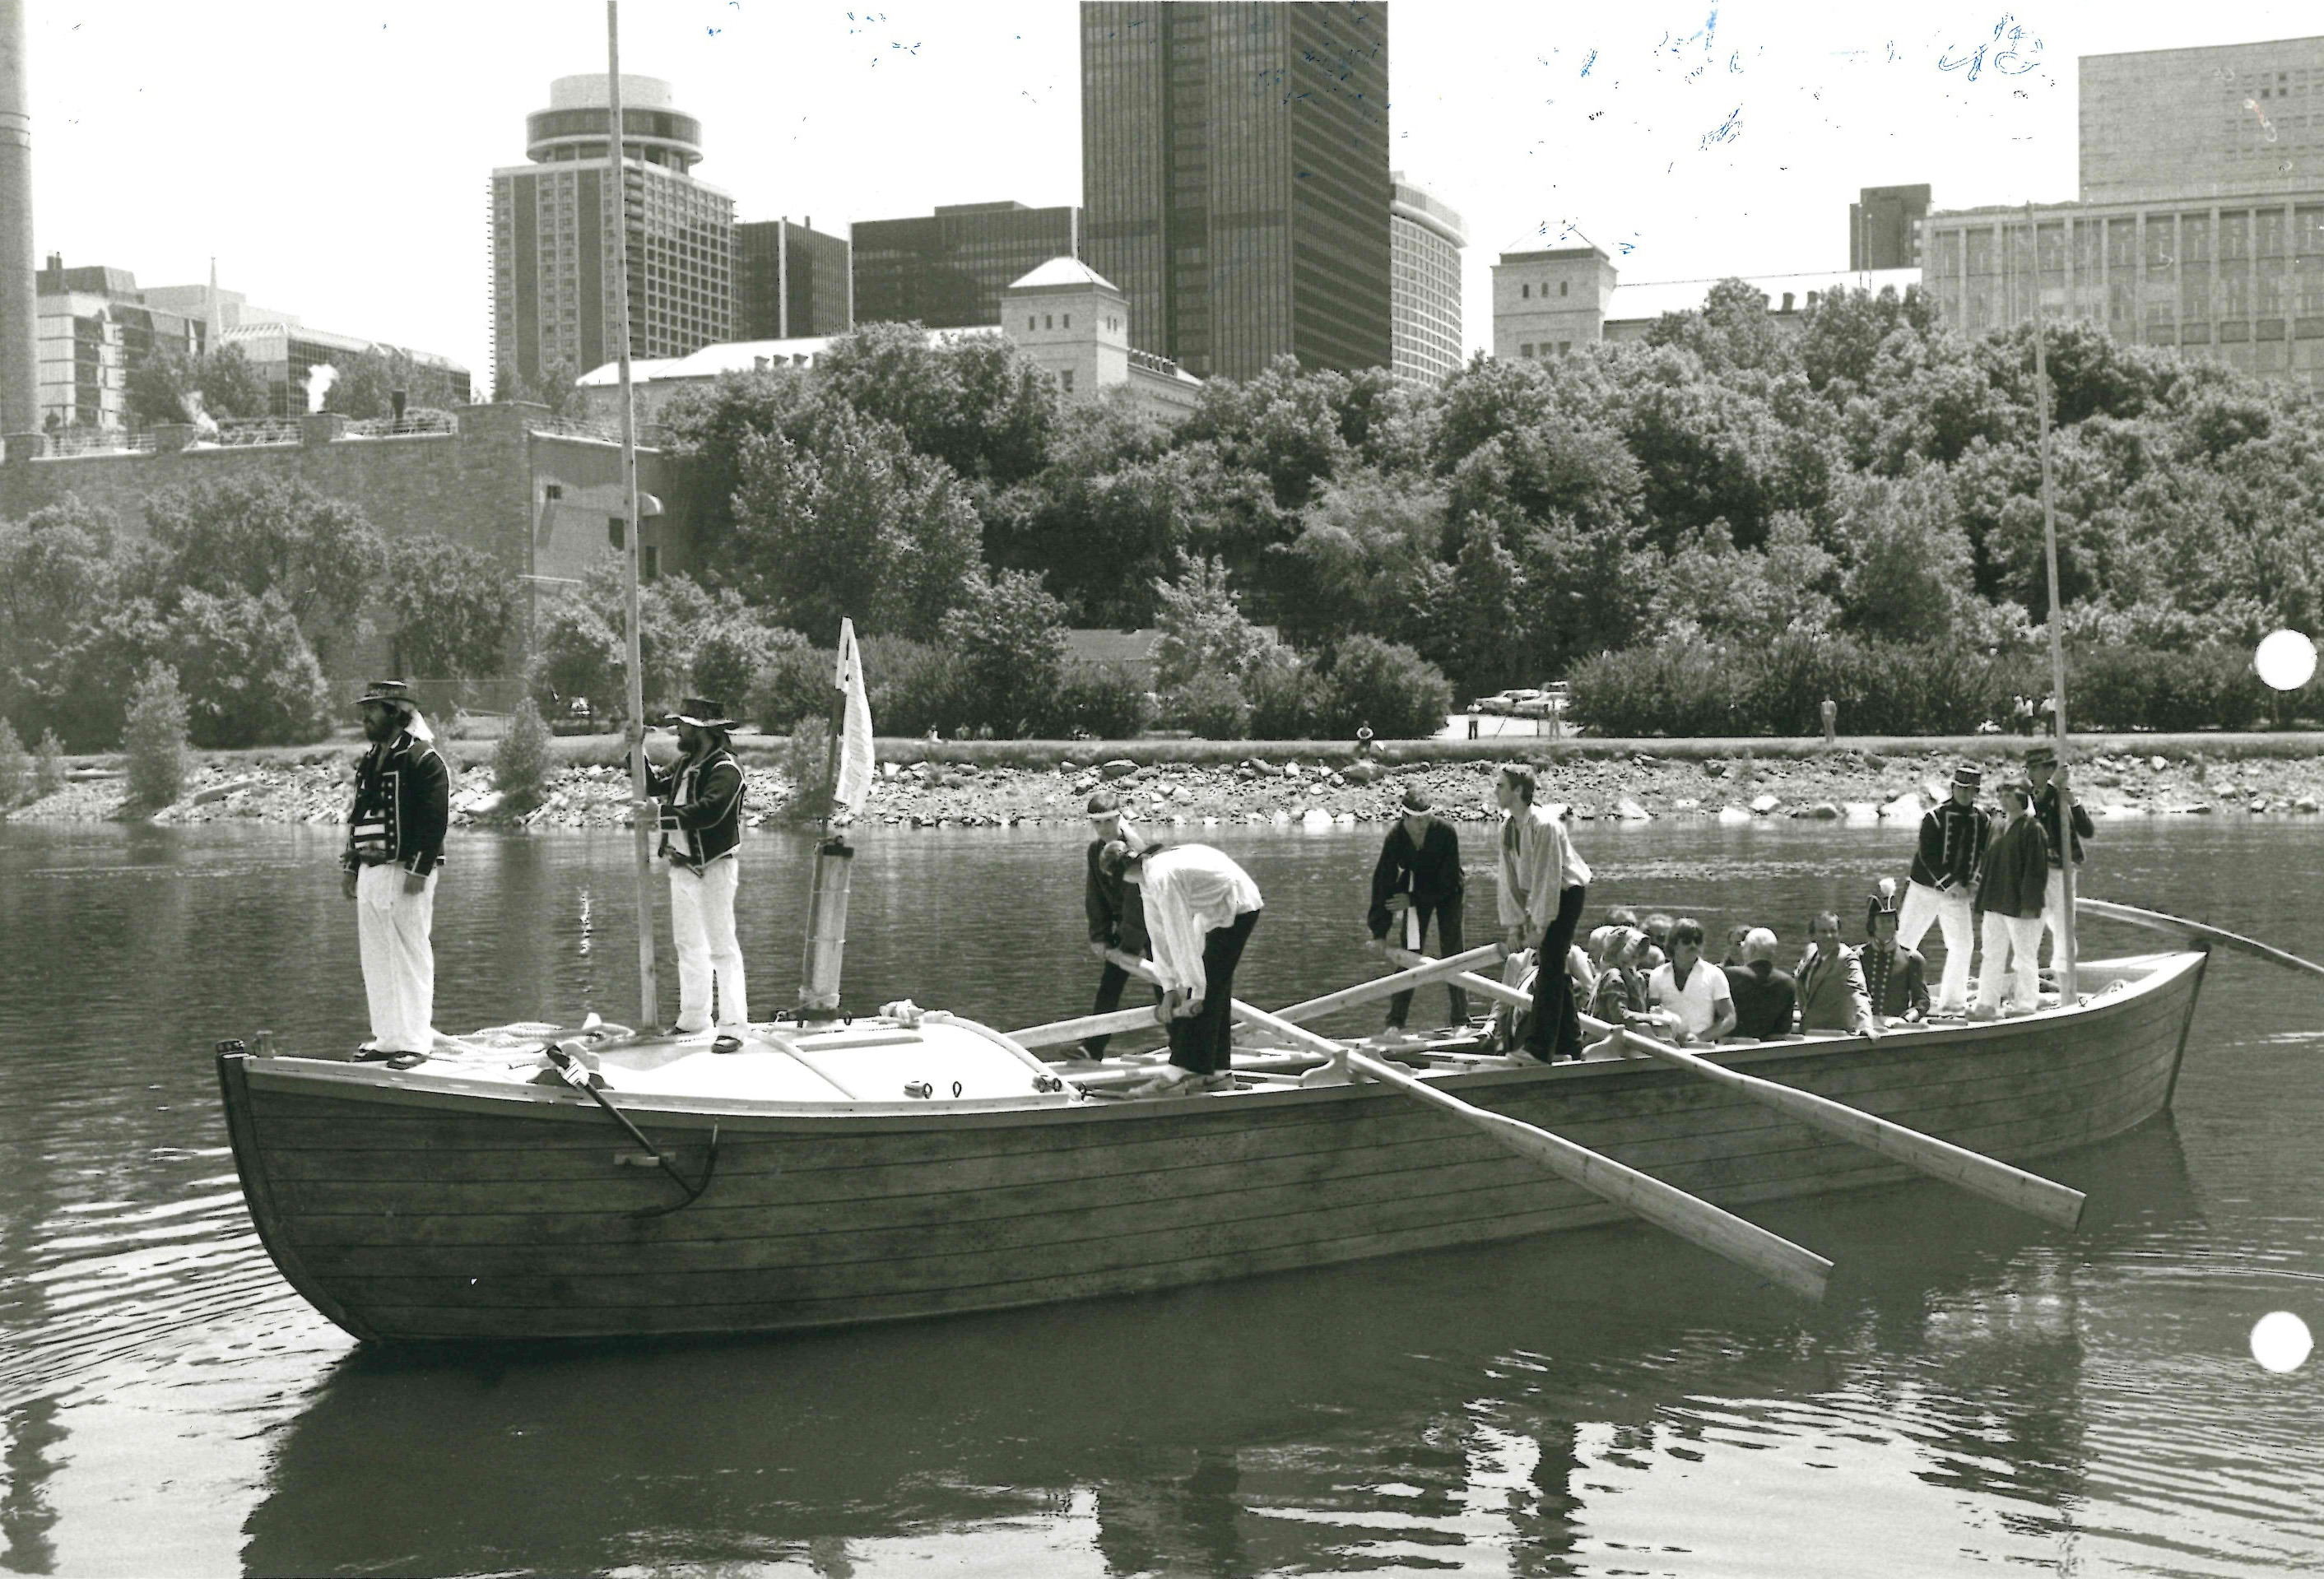 The City of Lockport plans to buy a replica of an Erie Canal boat from the Buffalo Maritime Center. This undated photo shows the type of boat that the center will build for Lockport. (Courtesy of Buffalo Maritime Center).